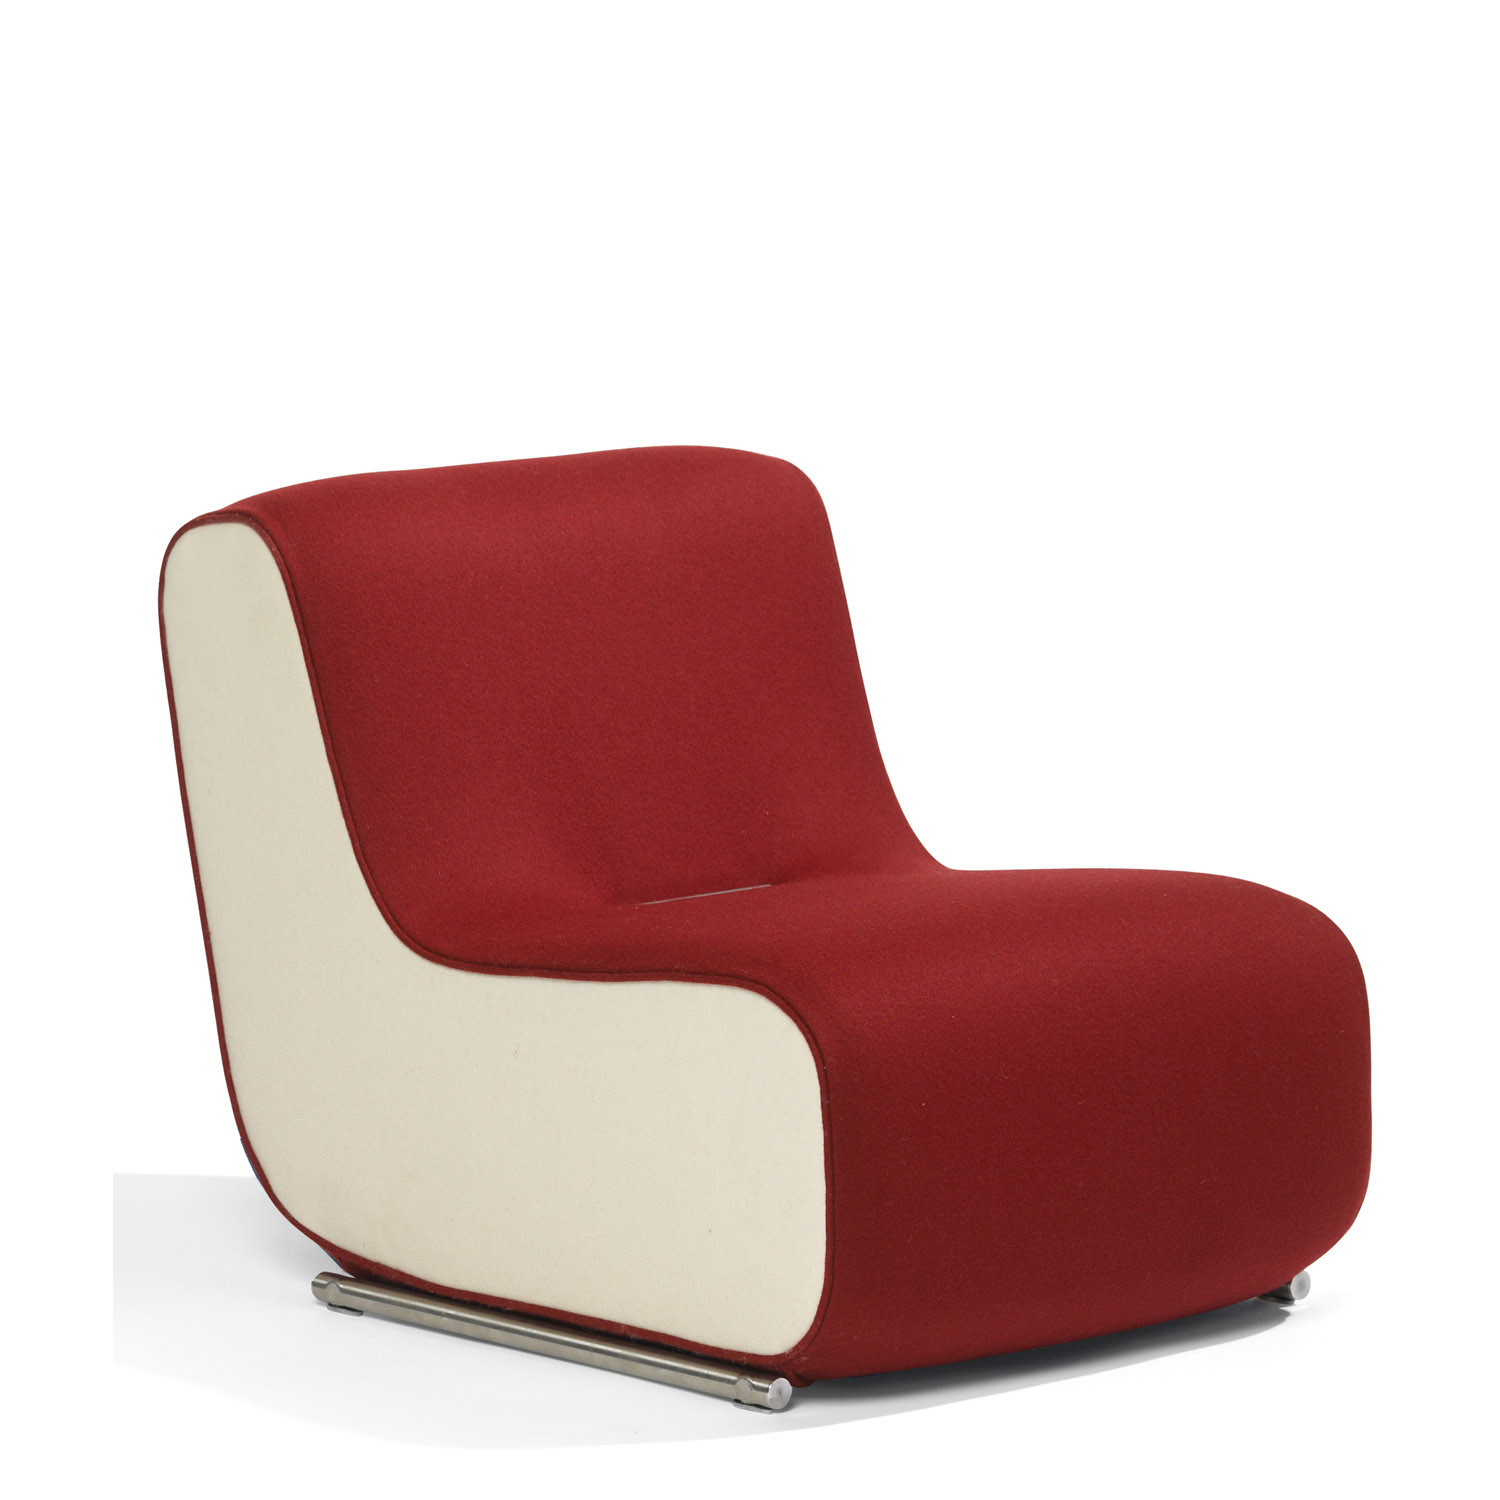 Ally S06 Easy Chair by Hertel & Klarhoefer